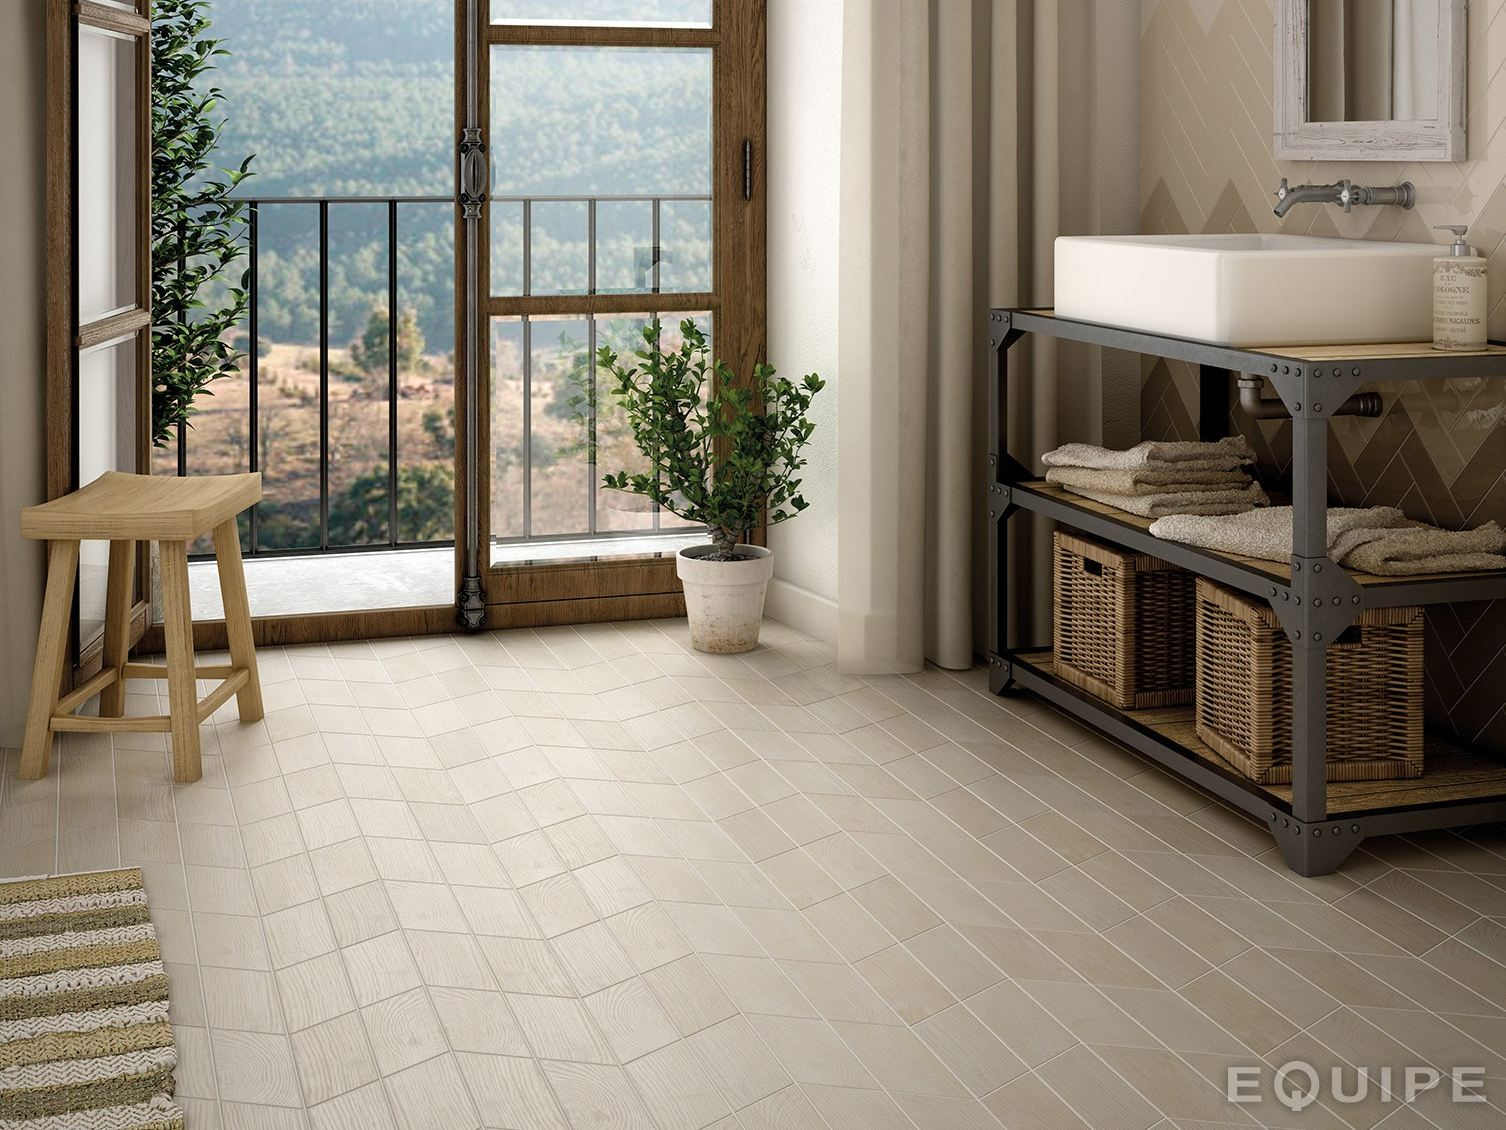 hexawood ceramic wall floor tiles by equipe ceramicas. Black Bedroom Furniture Sets. Home Design Ideas